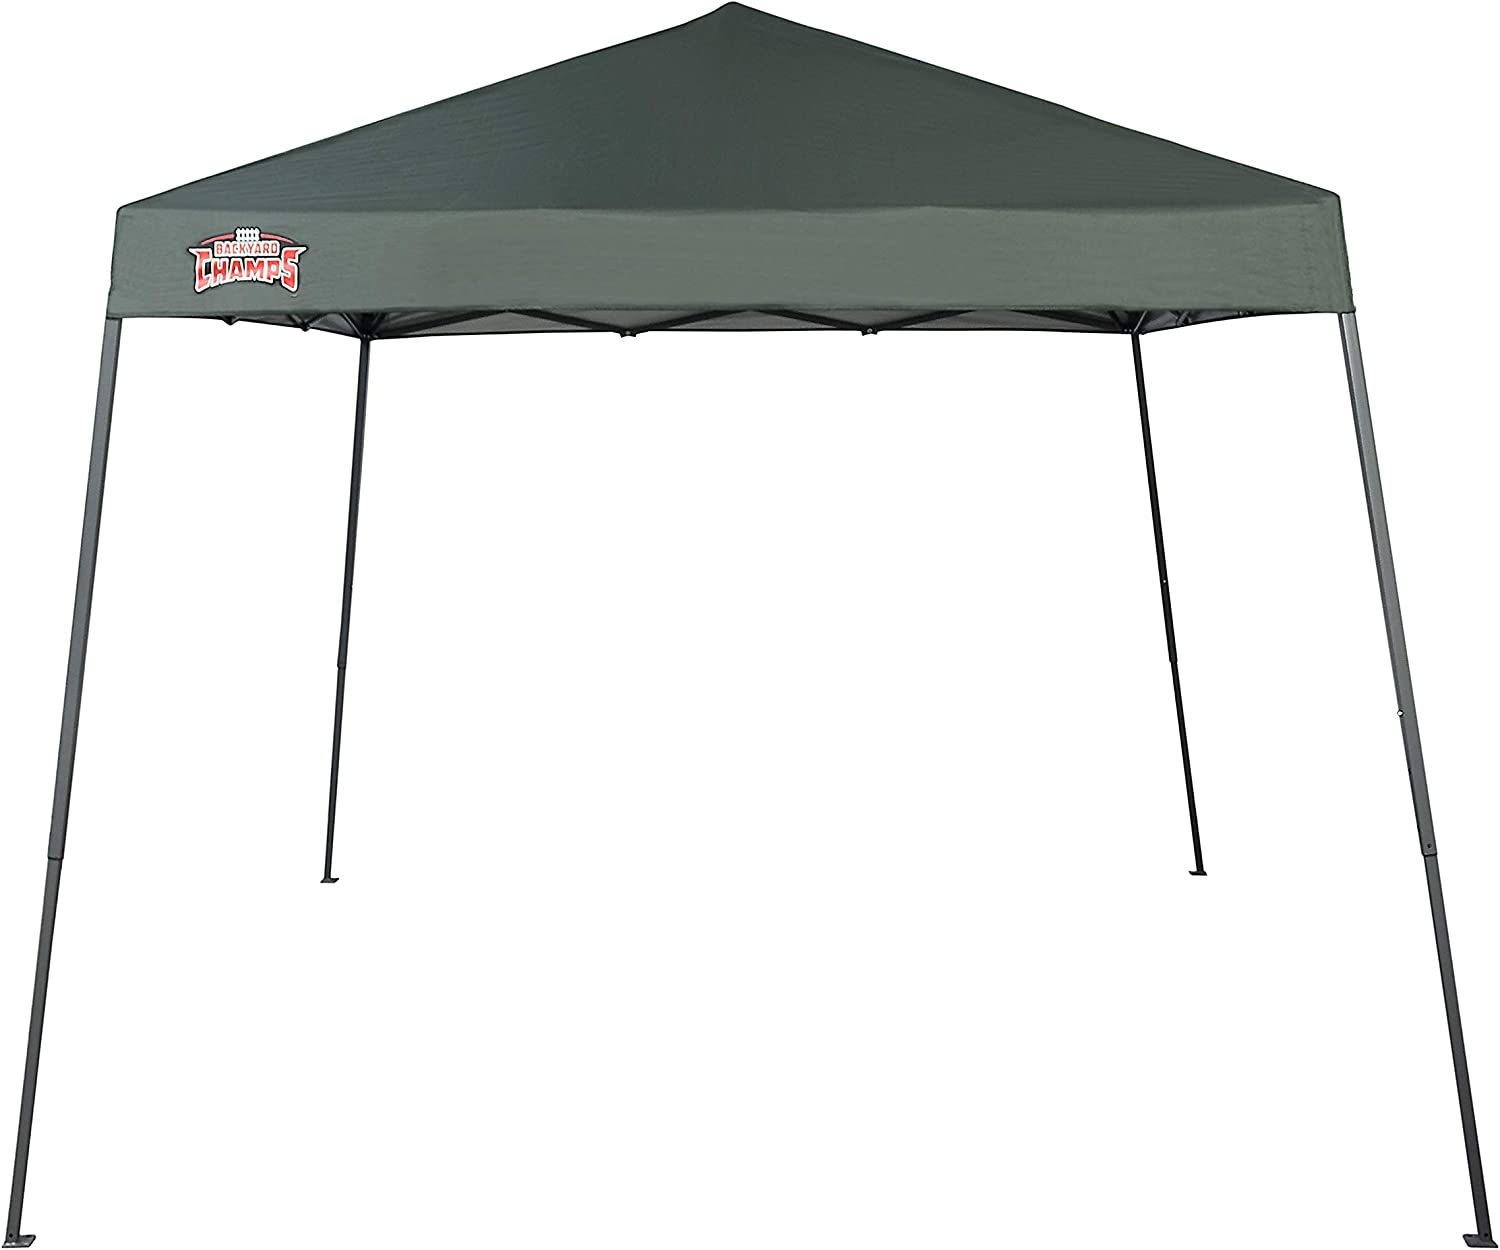 Forest Green Top Backyard Champs Shade 64 10x10 Instant Canopy Gray Frame